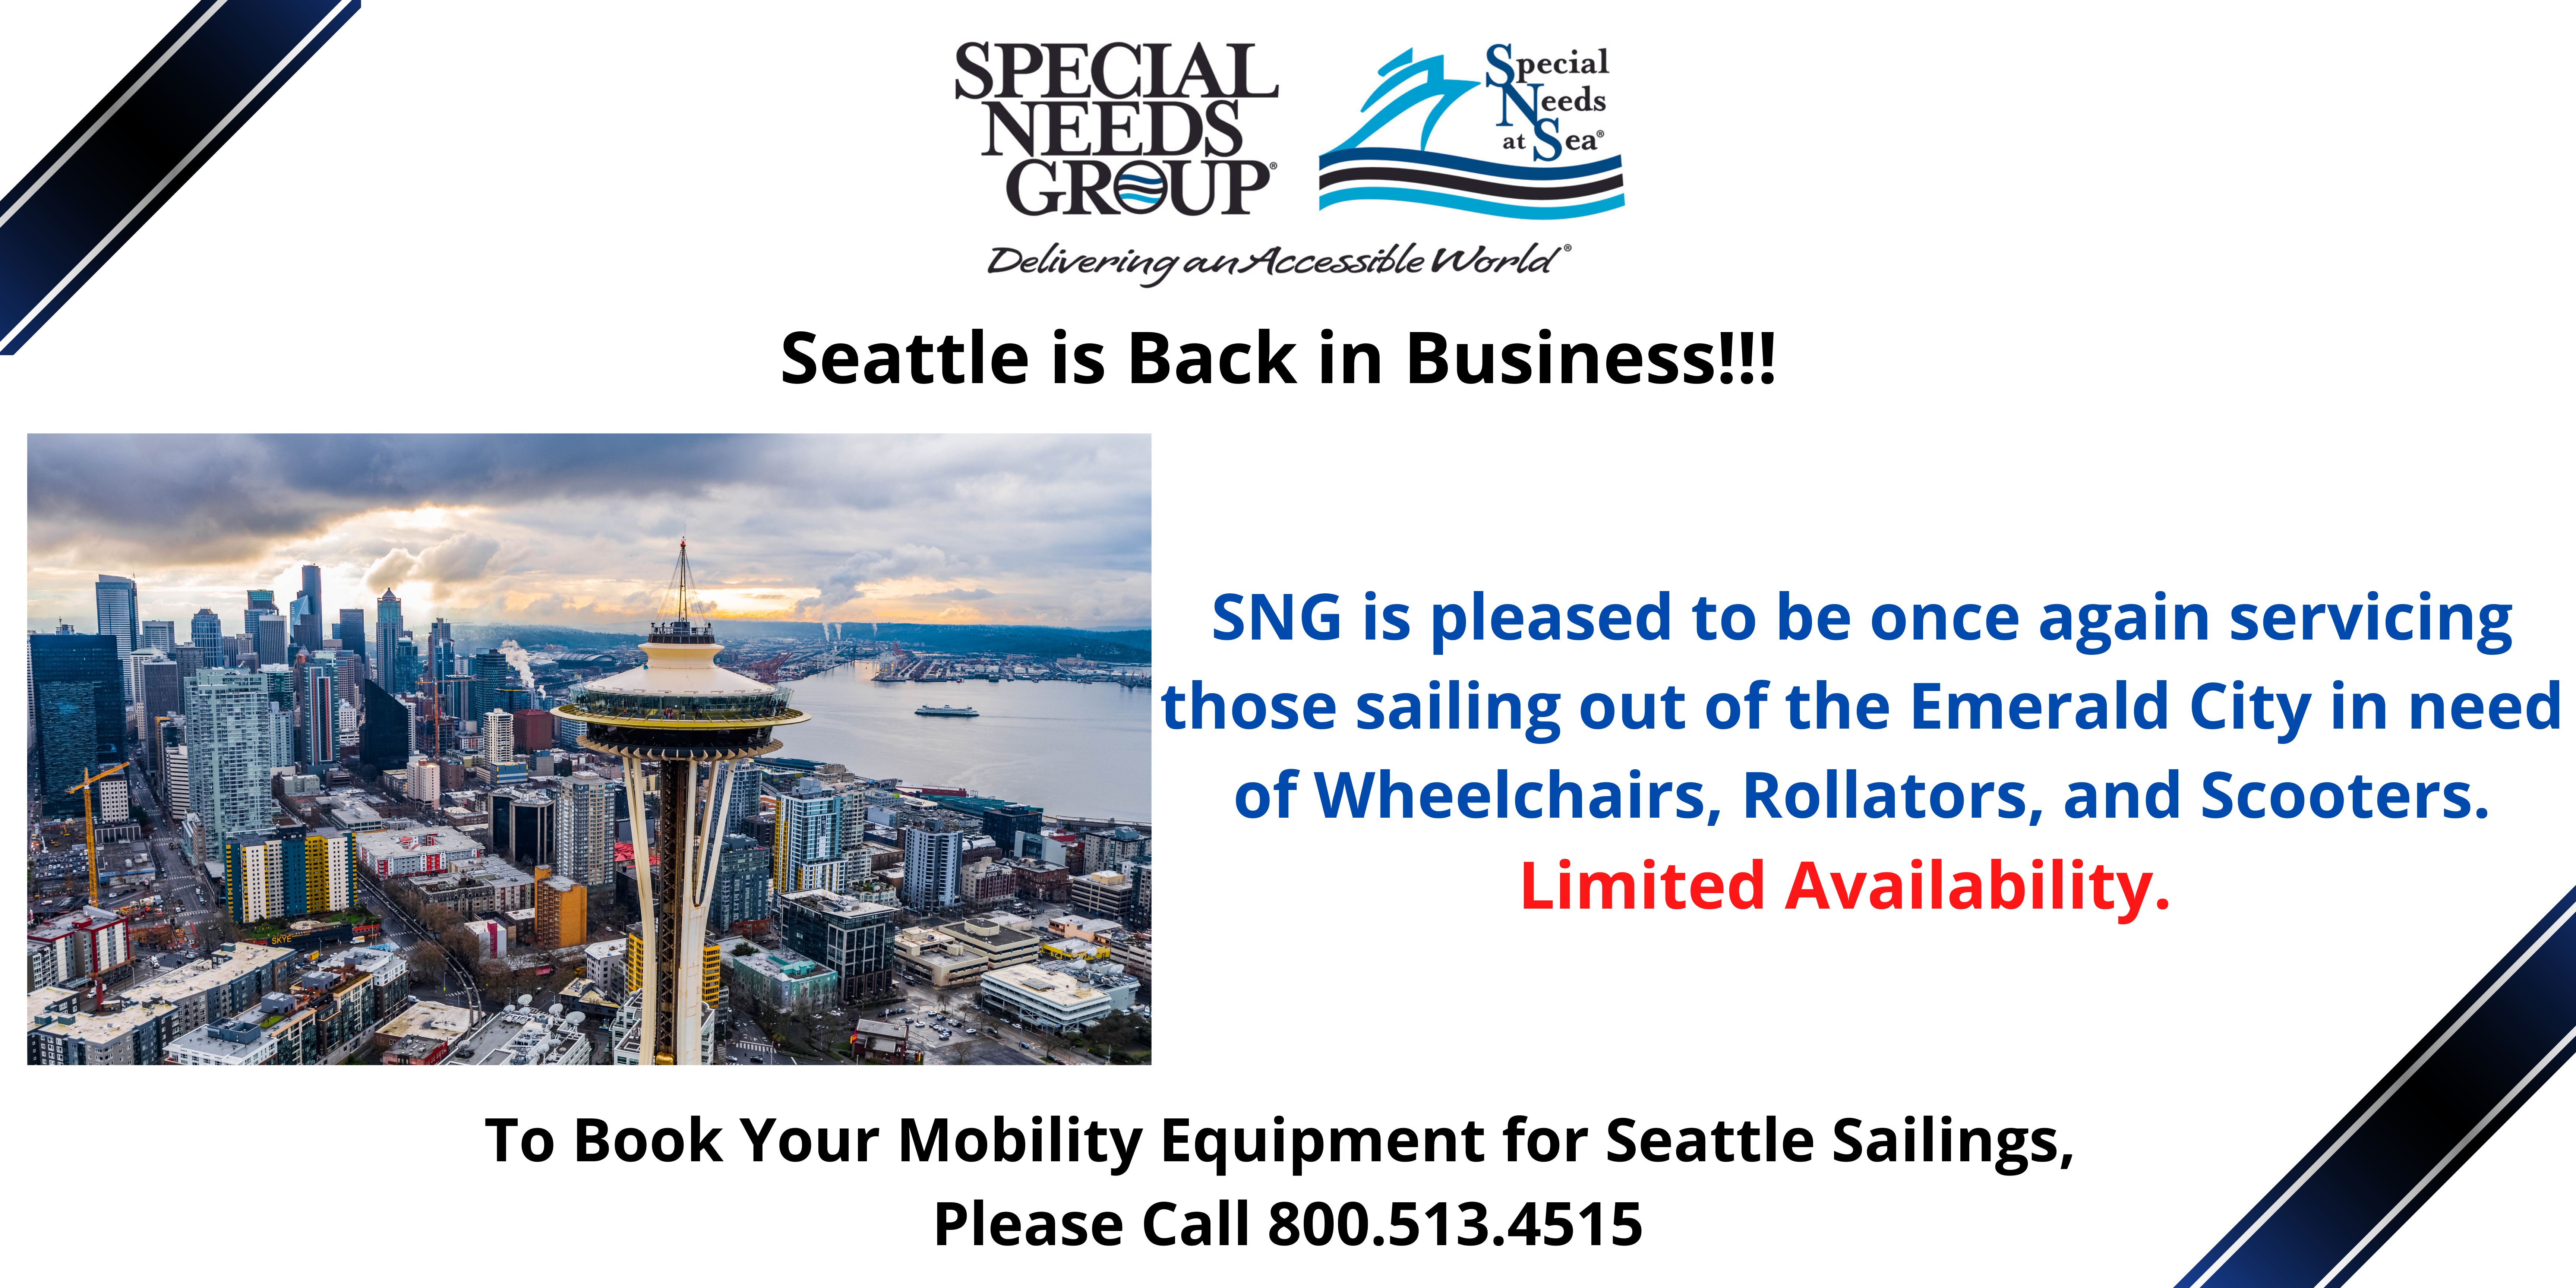 SNG Services Cruises From Seattle For Mobility Equipment